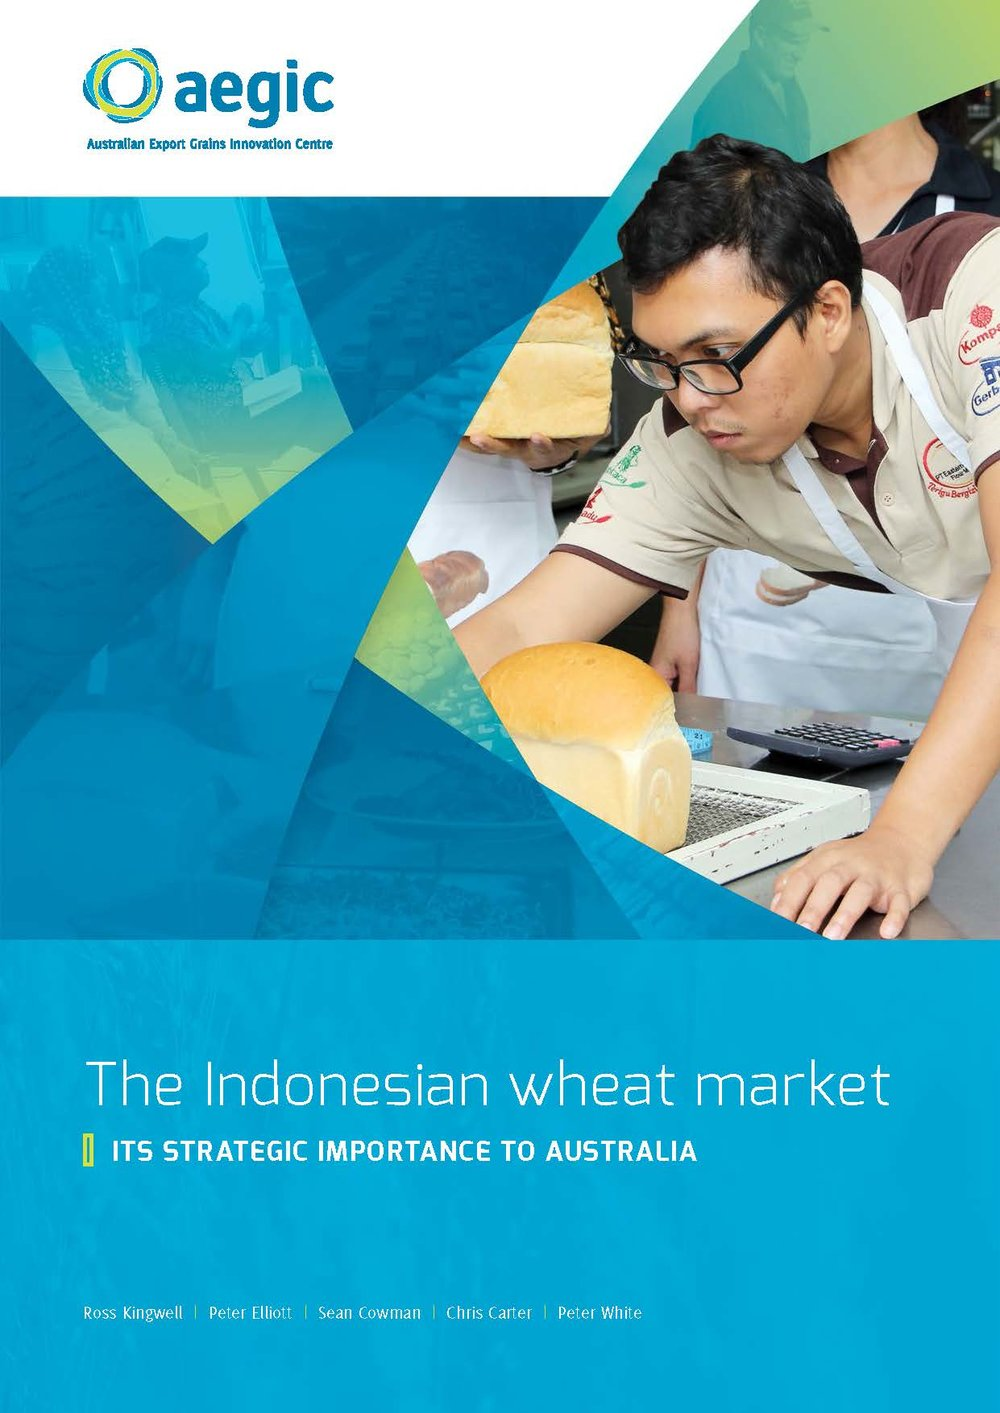 The Indonesian wheat market - its strategic importance to Australia